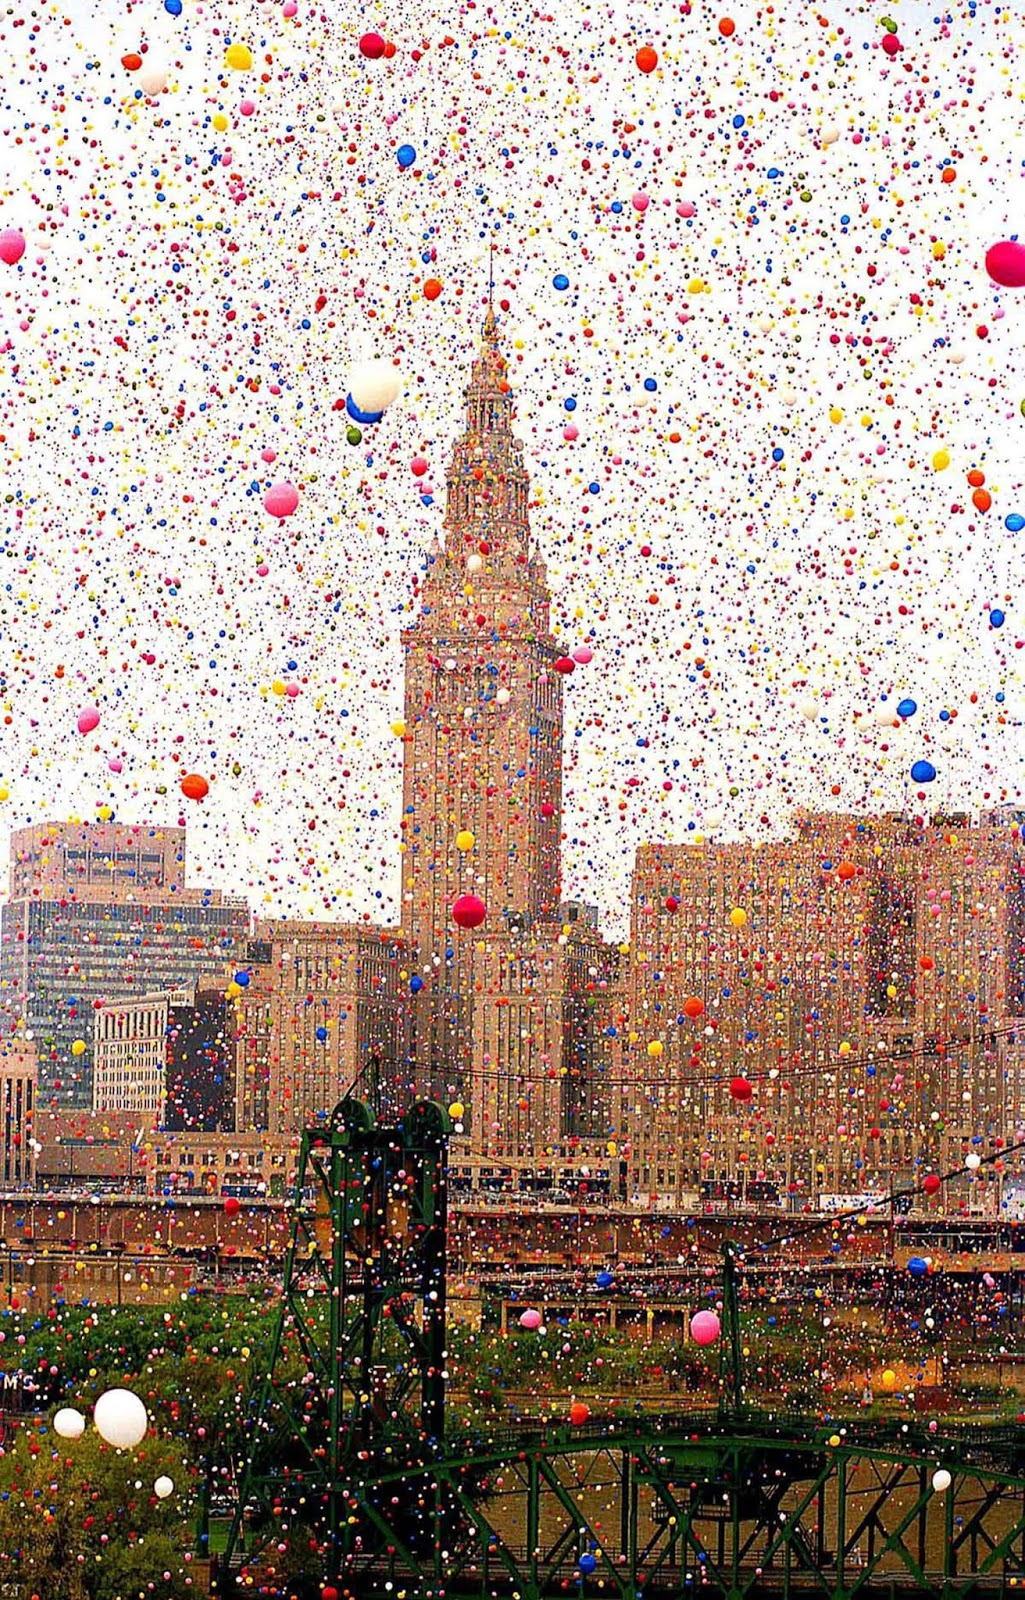 In the days following the event, balloons were reported washed ashore on the Canadian side of Lake Erie.